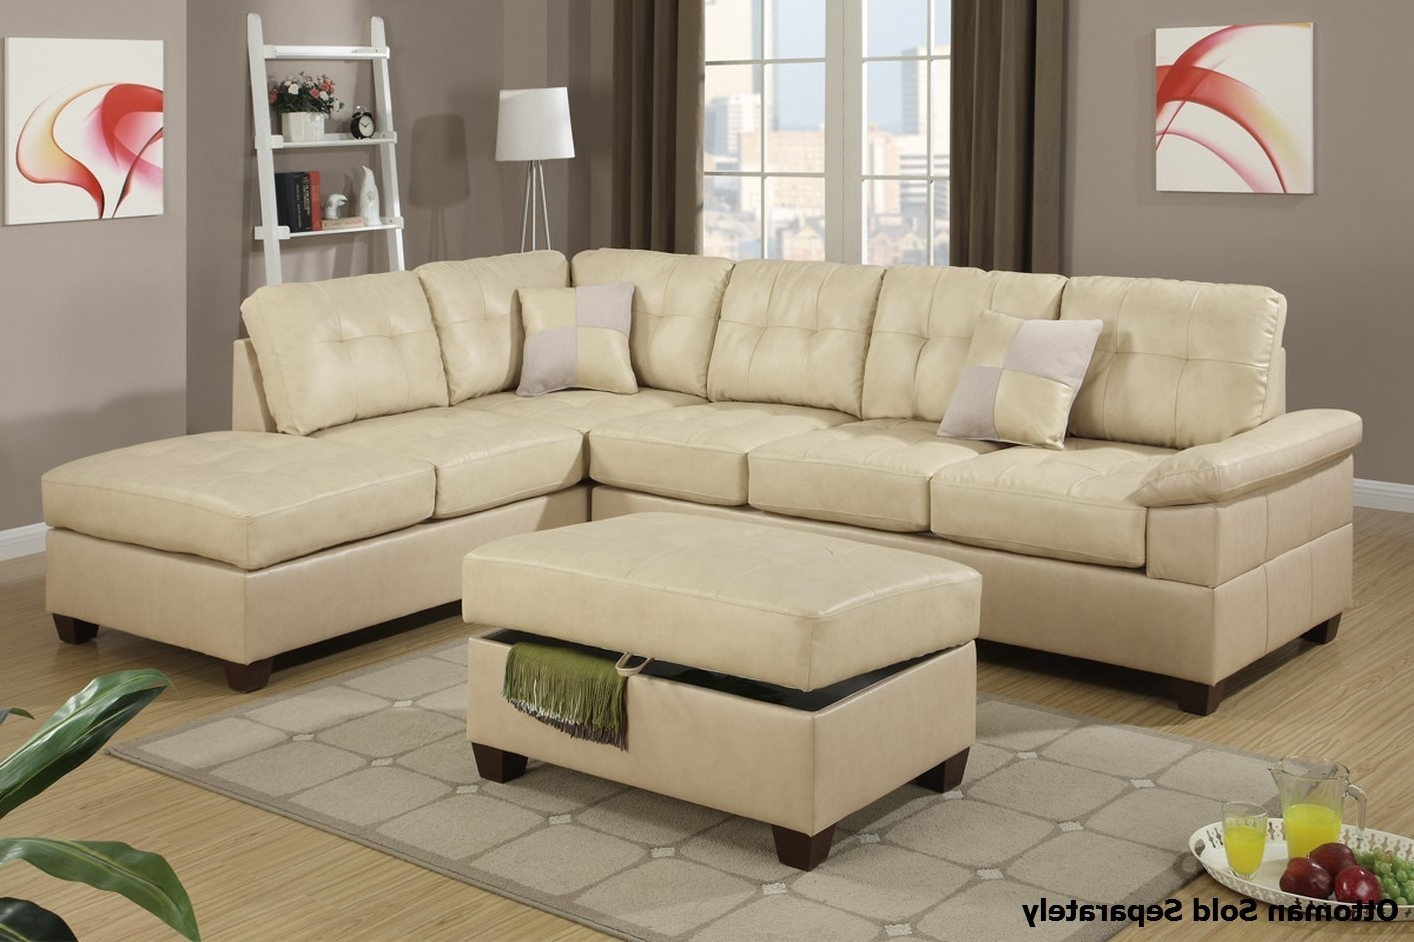 2019 Beige Sectional Sofas Regarding Sectional Sofa Design: Amazing Beige Leather Sectional Sofa Light (View 9 of 20)